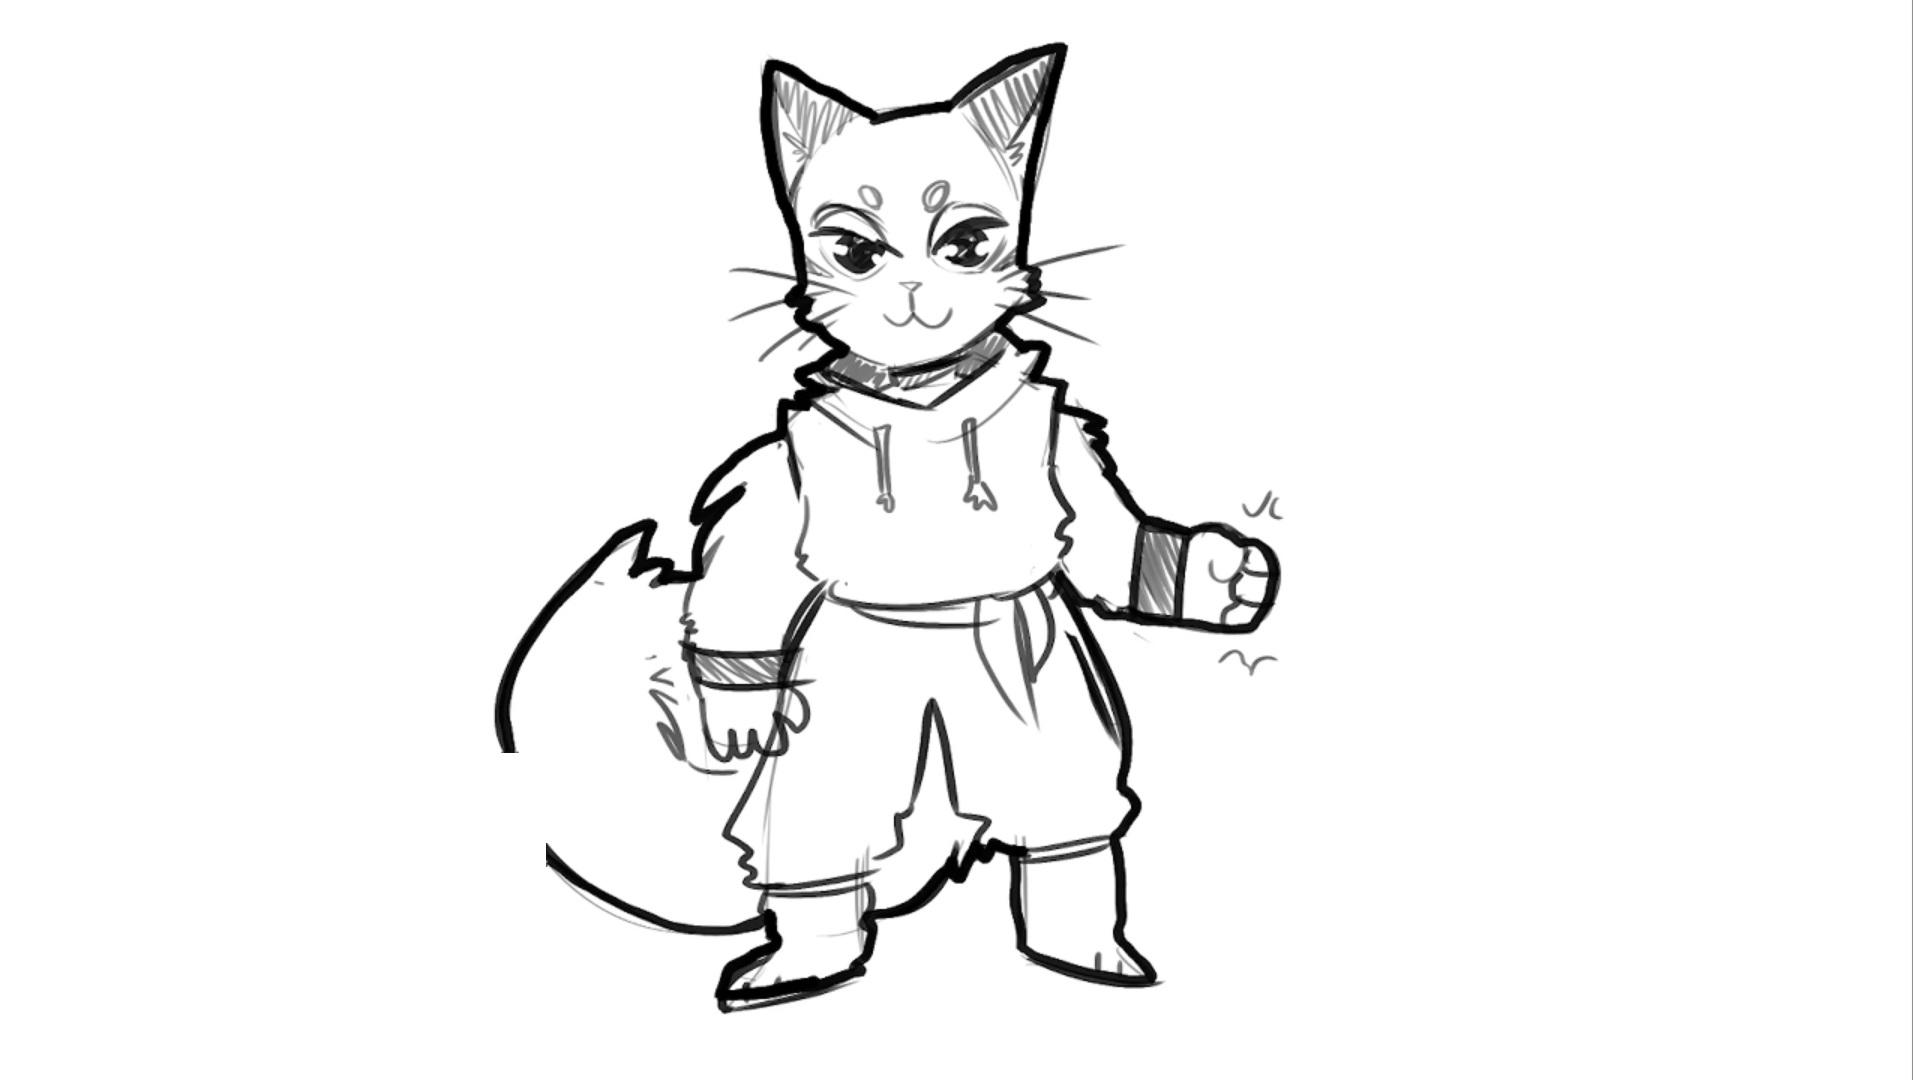 Dungeons Drawfee Drawga Live Bazil The Tabaxi Monk Drawfee Know Your Meme 3 love both tabaxis and monks! dungeons drawfee drawga live bazil